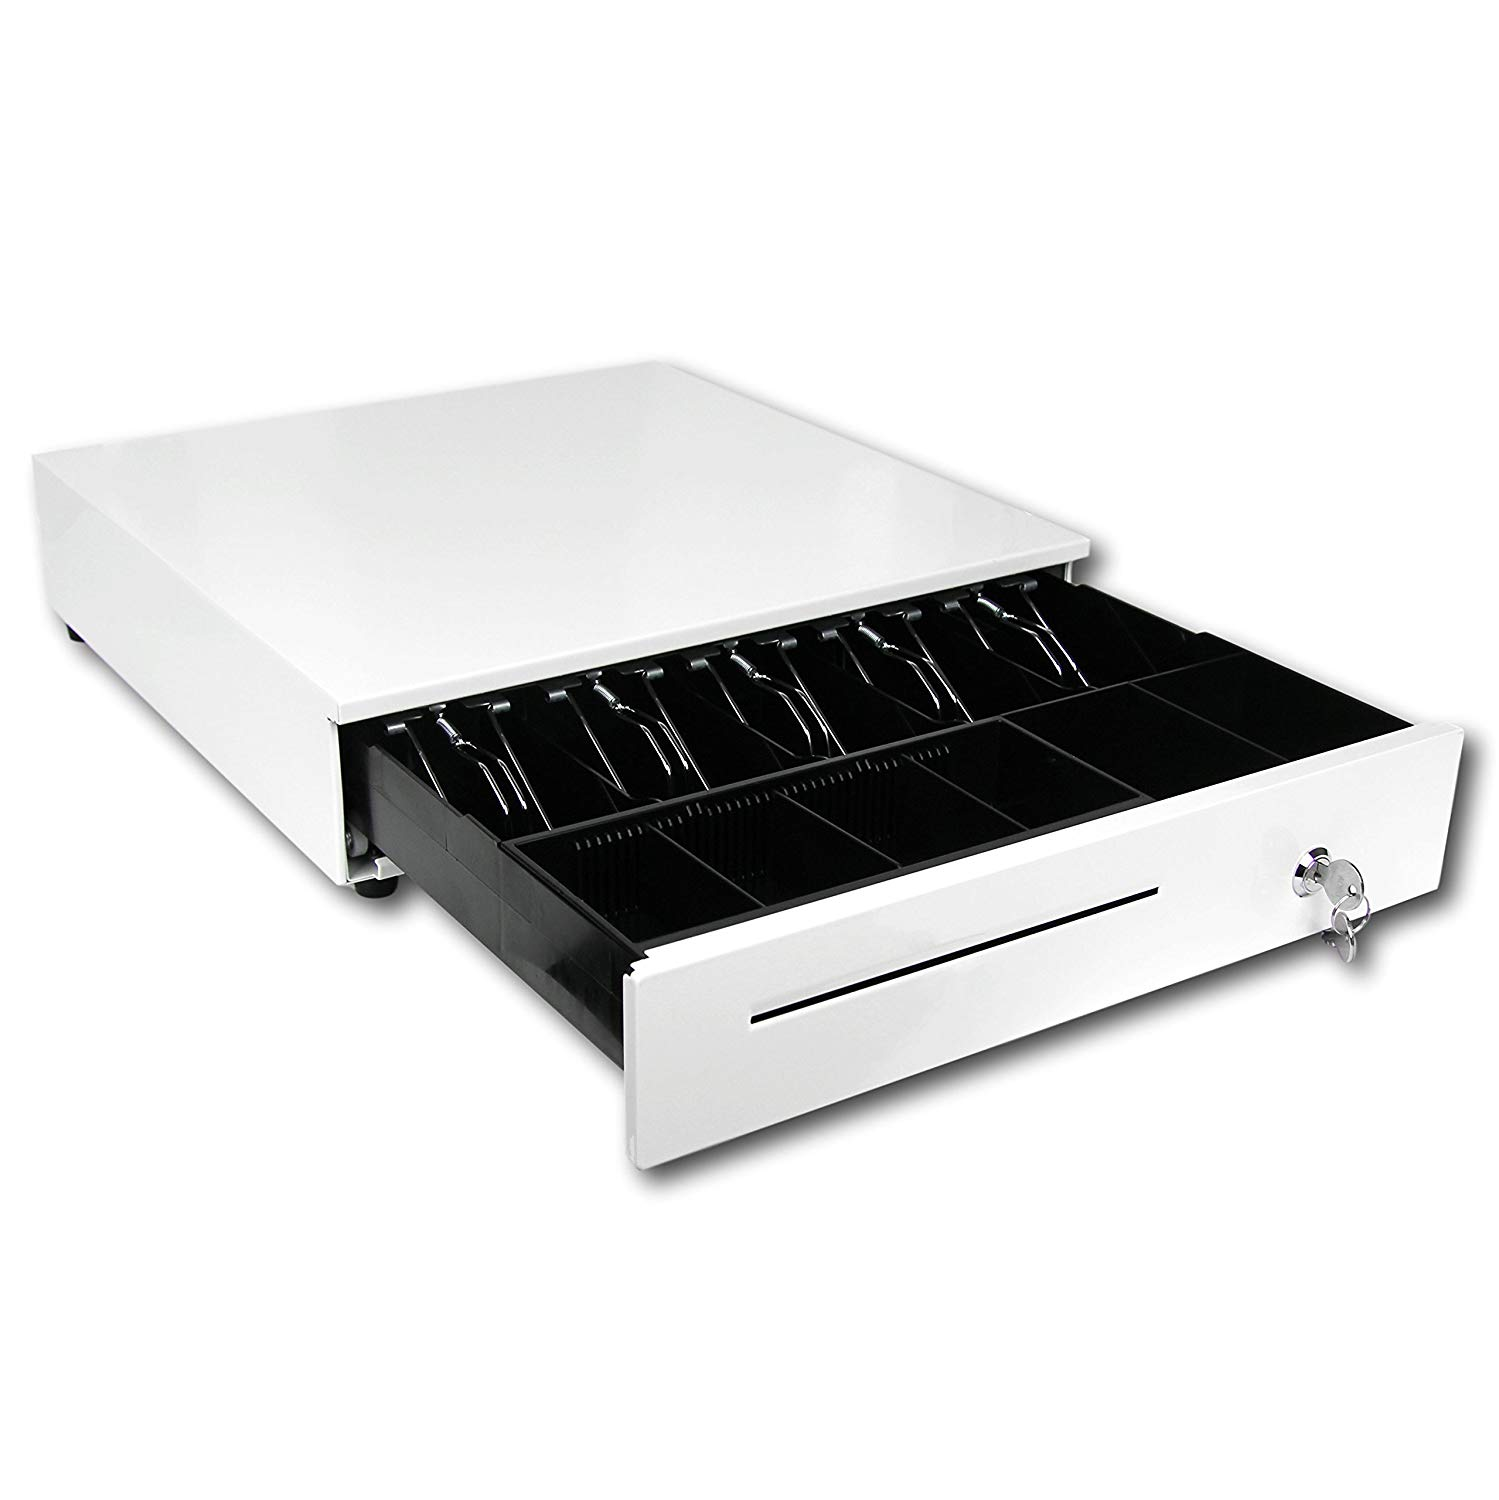 Cash Register Drawer for Point of Sale (POS) System with Removable Coin Tray, 5 Bill/6 Coin, 24V, RJ11/RJ12 Key-Lock, Media Slot, White